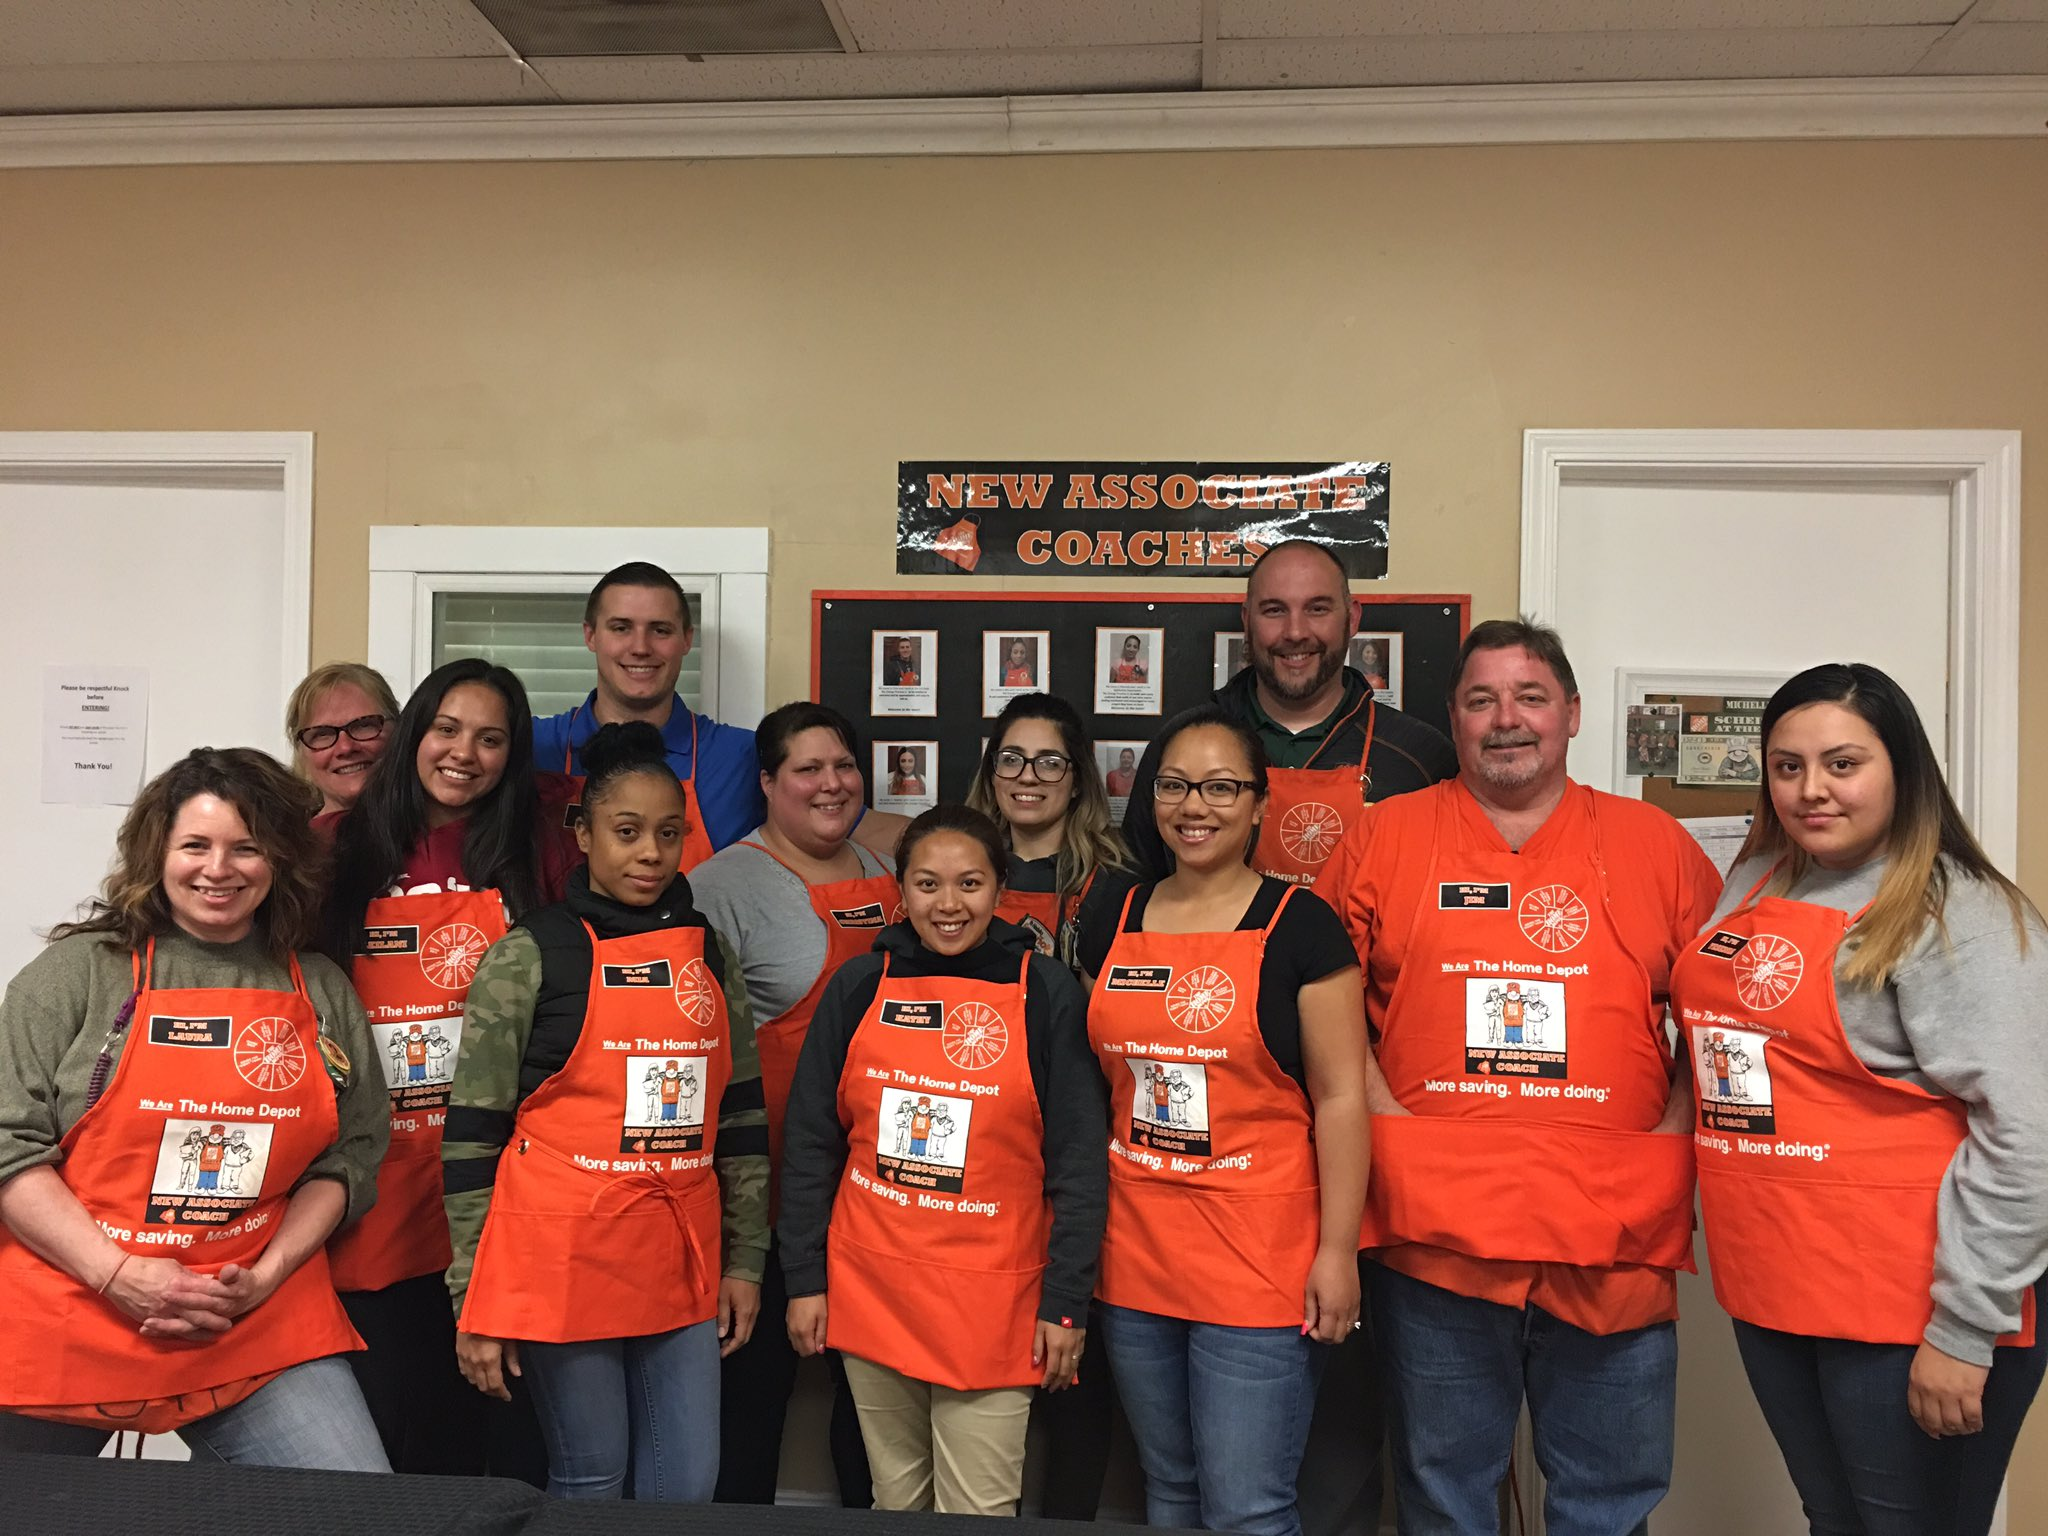 Elk Grove Home Depot on Twitter Custom made aprons for our New